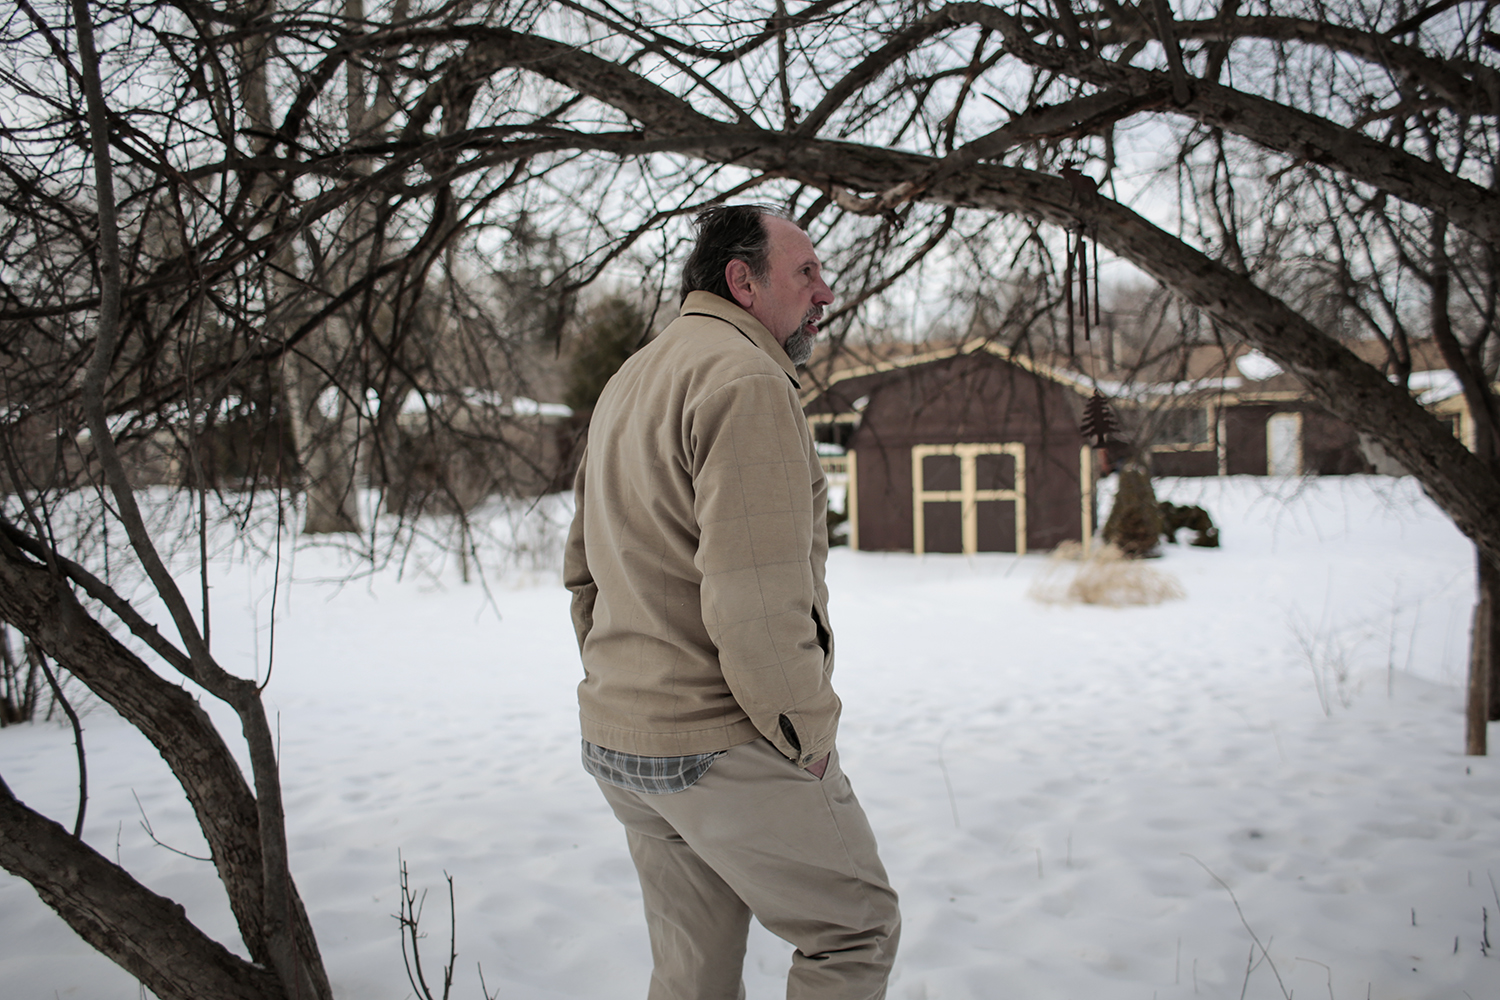 Rick Shriner looks at the deer tracks crossing his yard on Wednesday, March 4, 2015 in Livonia. Deer have become a problem for the Shriners over the past four years, destroying their nicely landscaped yard by destroying fences, shrubbery and trees. Tim Galloway/Special to DFP